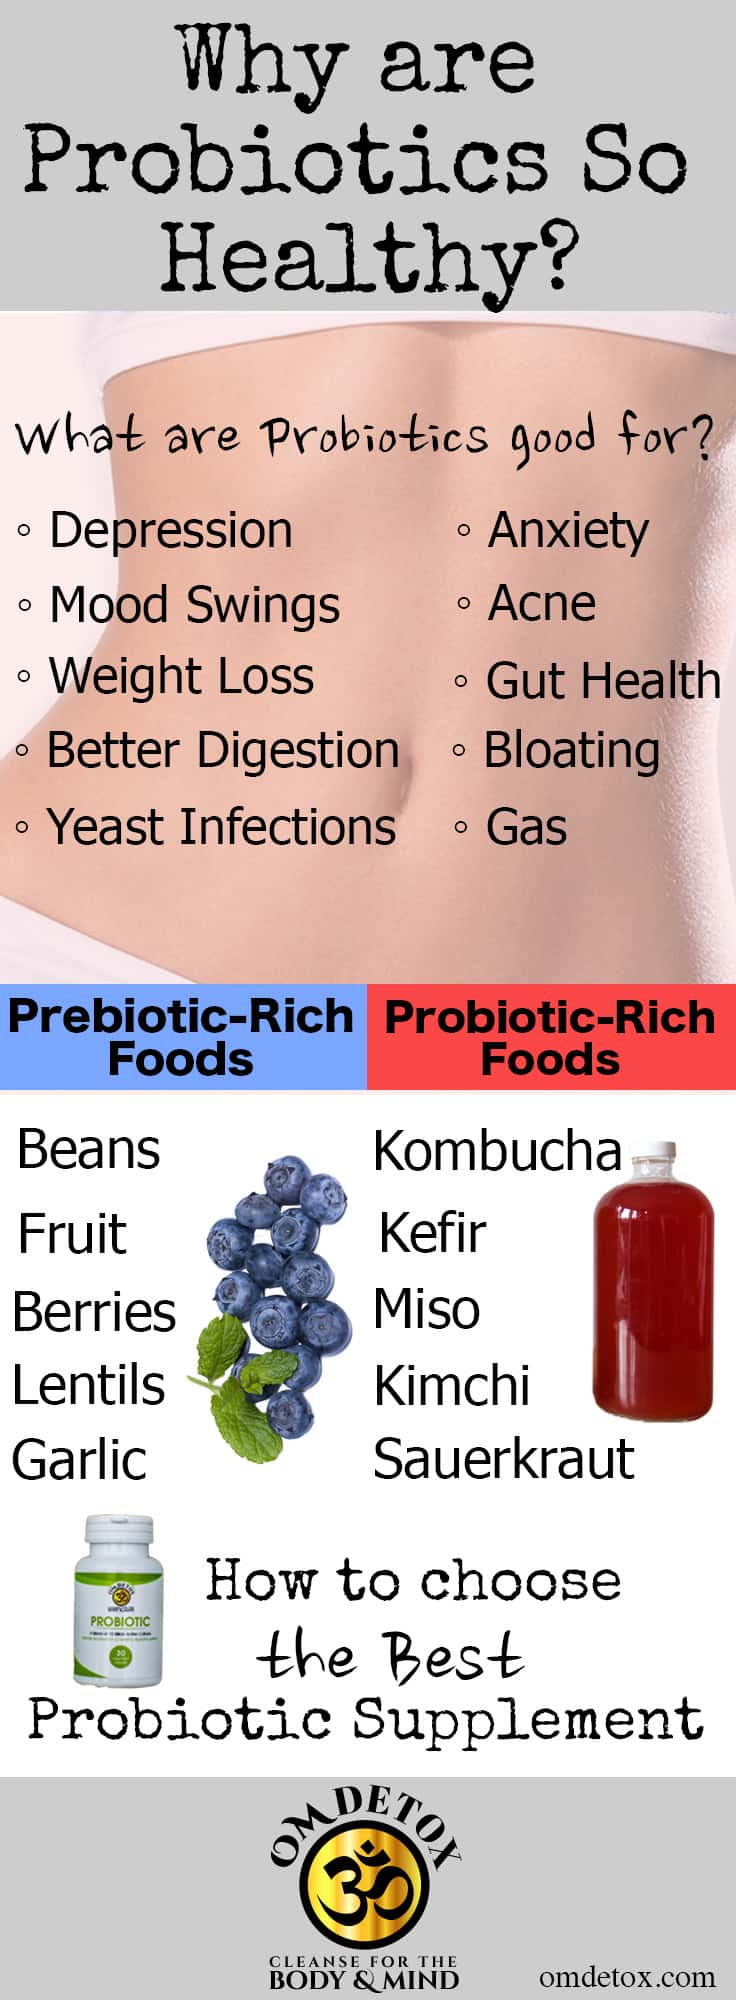 Probiotics and gut health